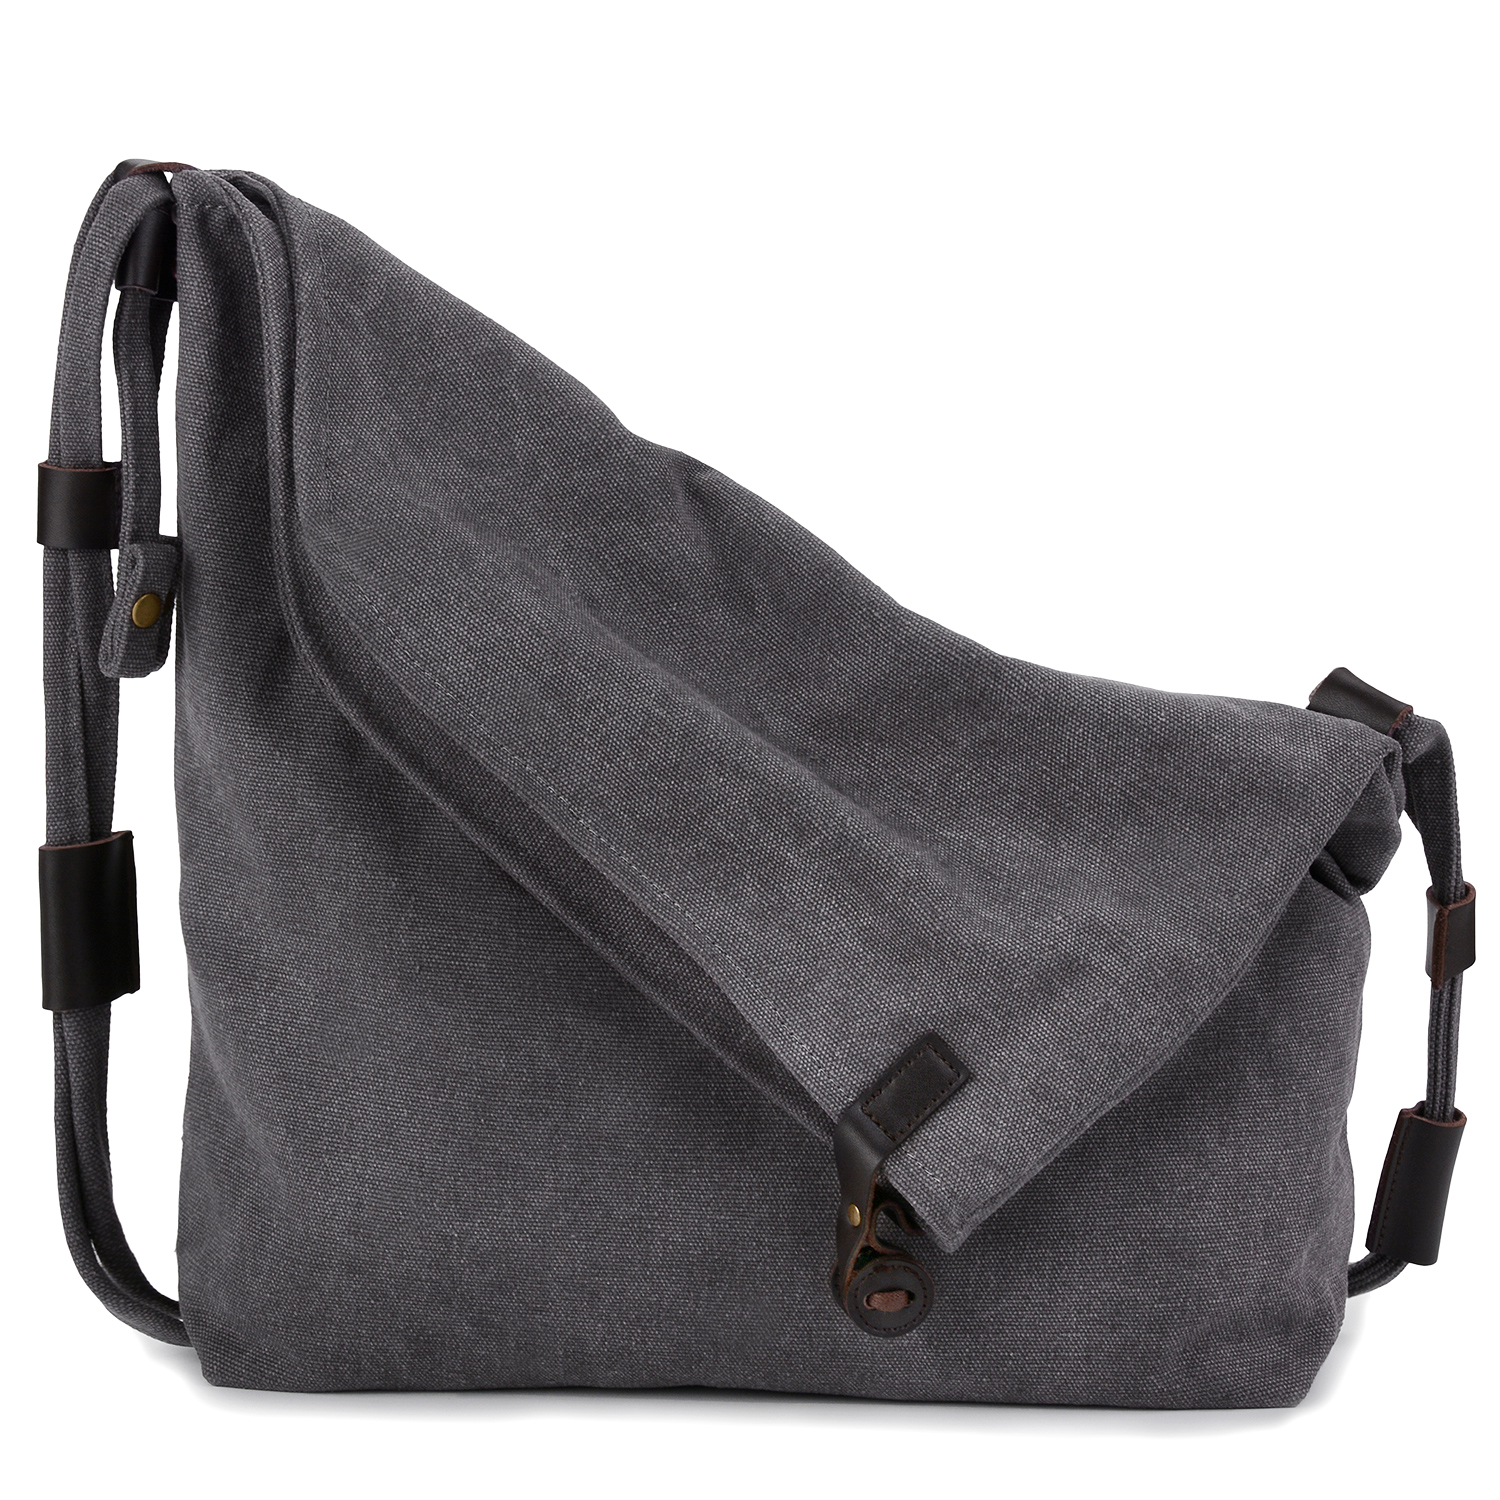 Coofit Preppy Canvas Unisex Retro Messenger Bag  (Dark Gray)